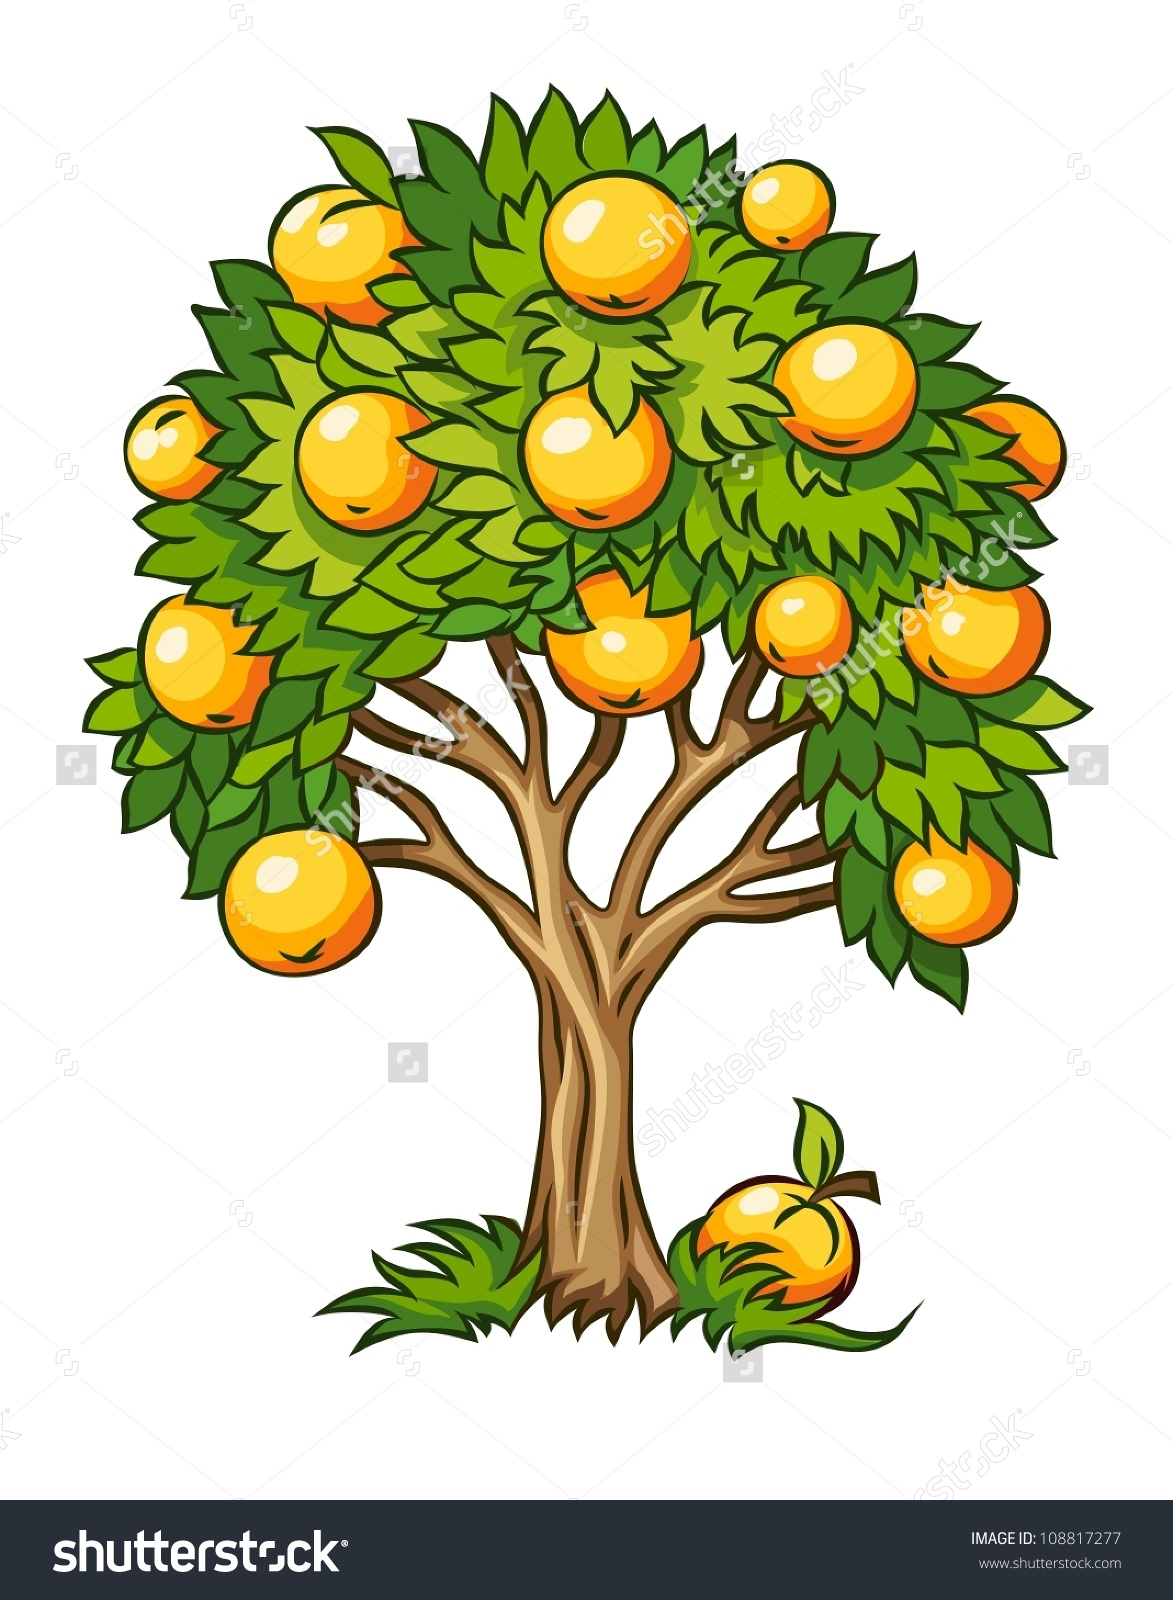 Mango tree clipart 20 free Cliparts | Download images on ...